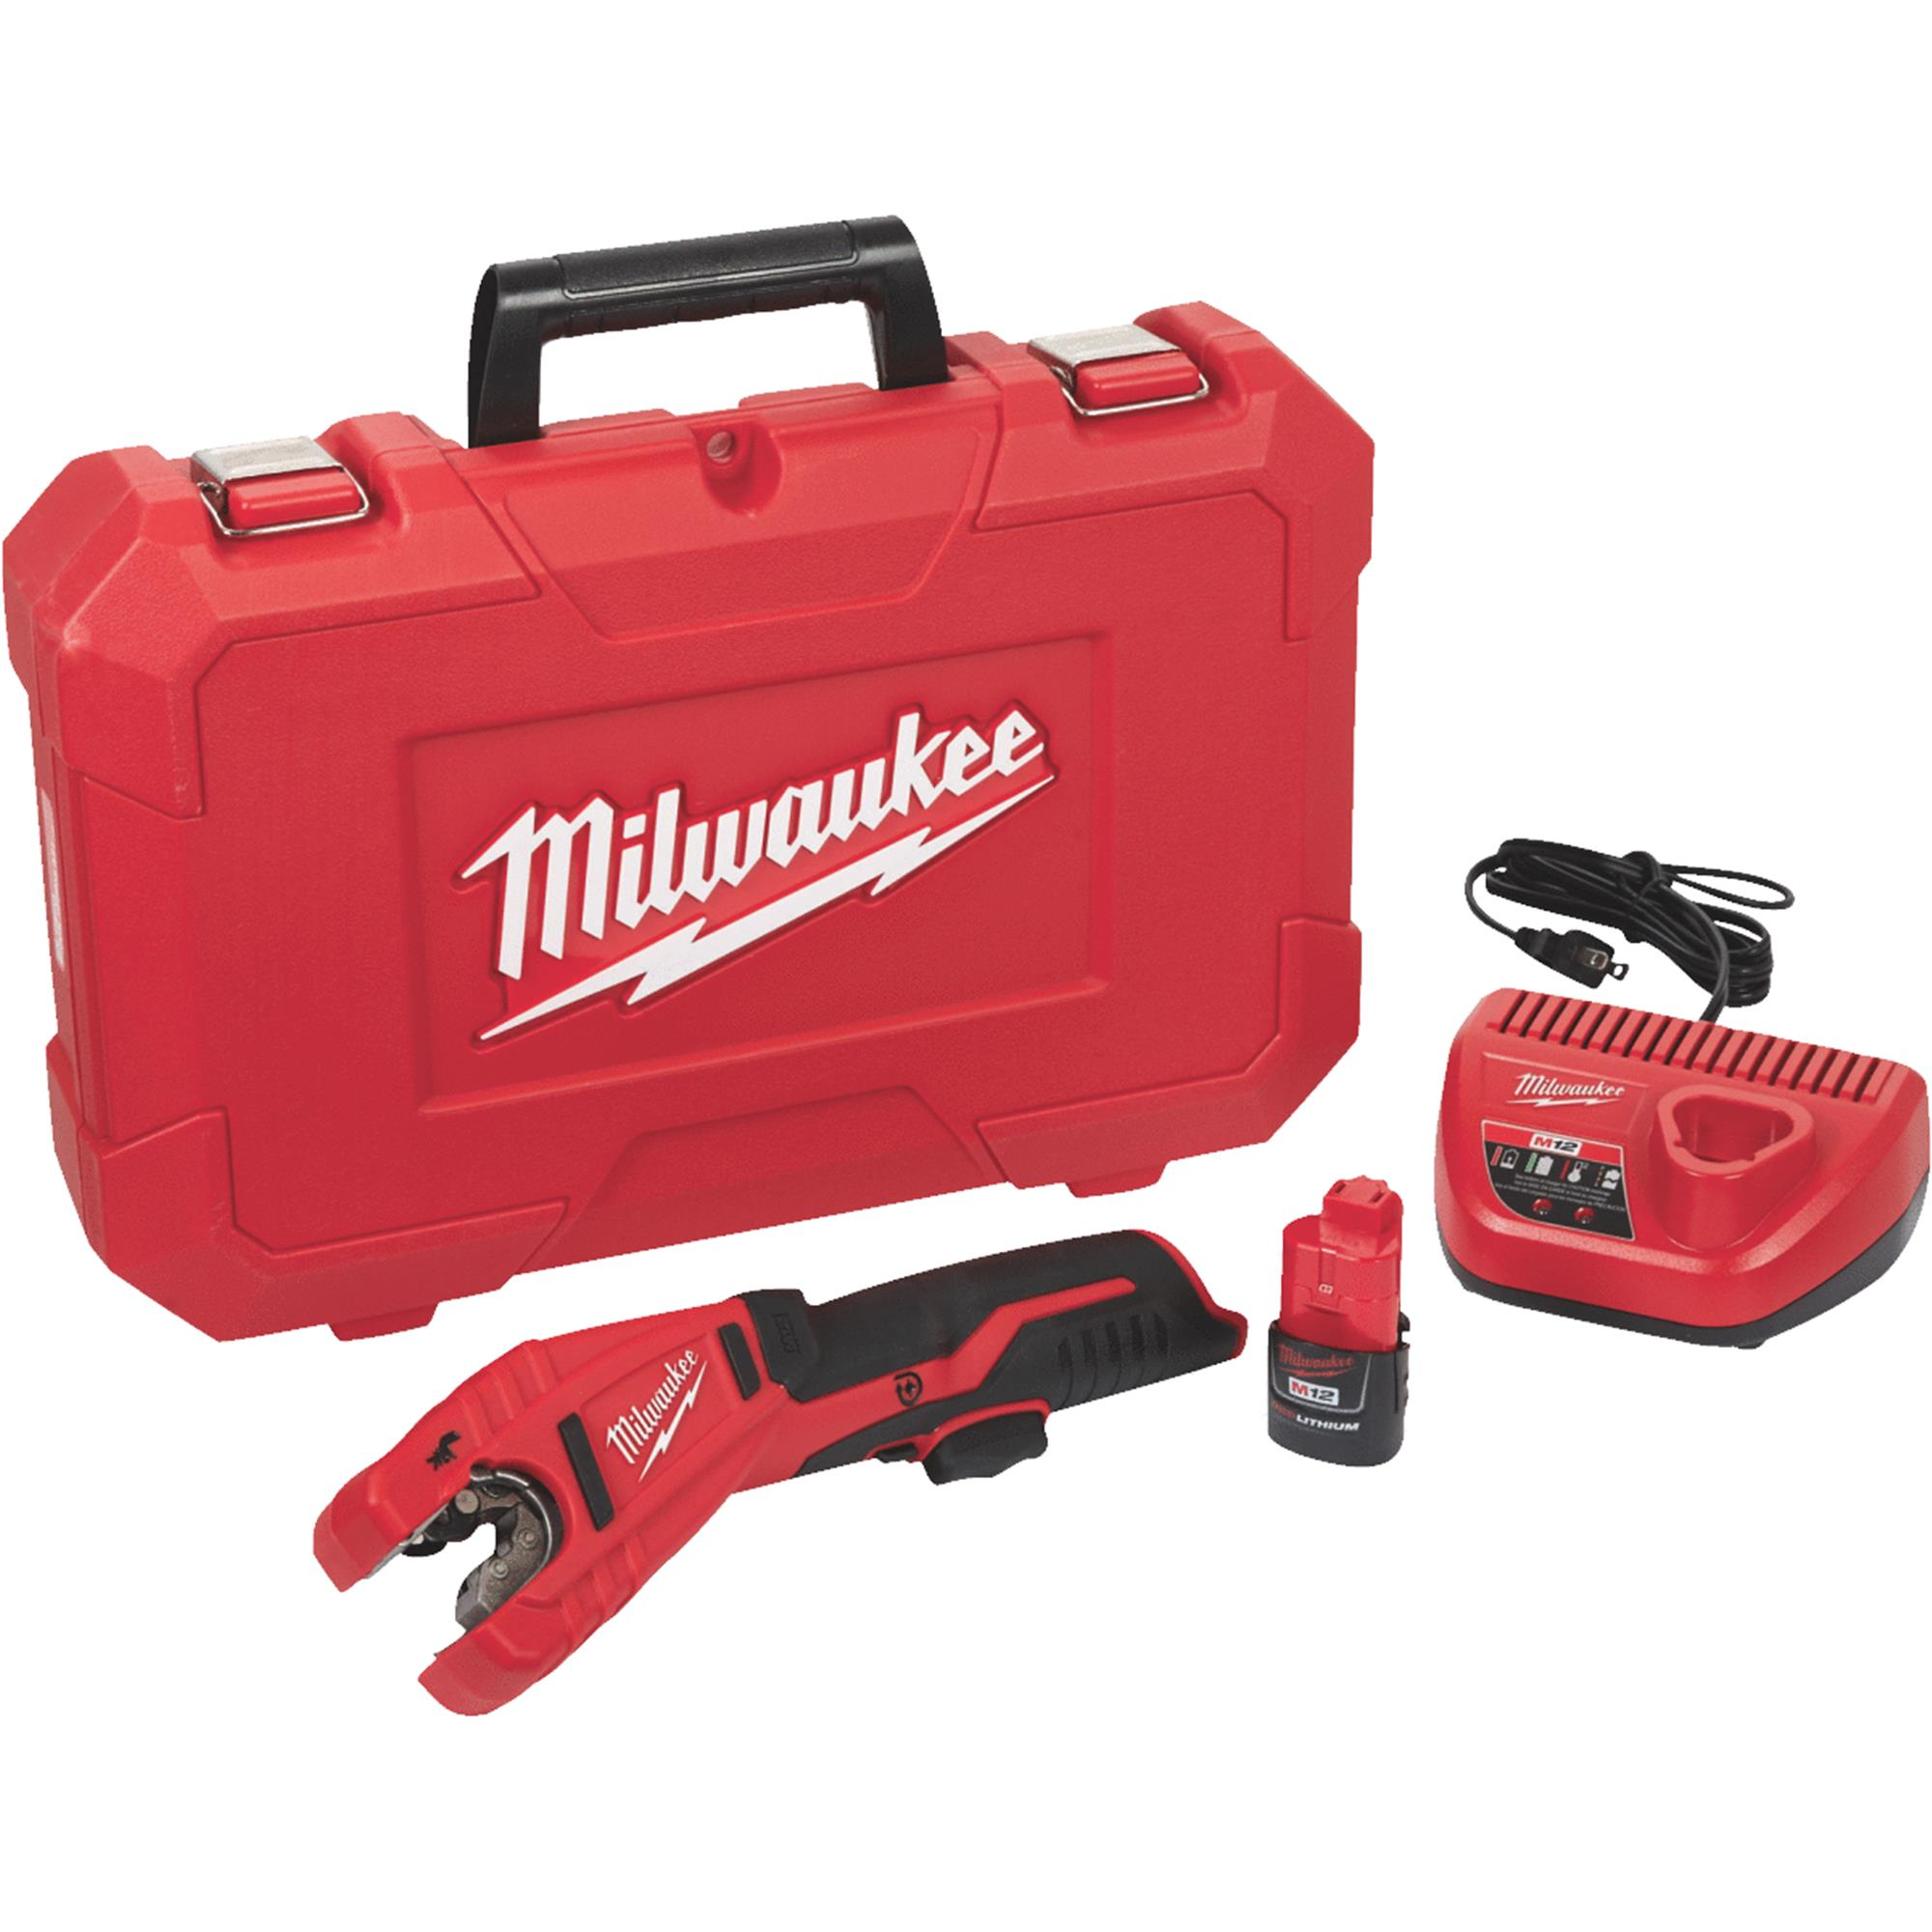 Milwaukee M12 Lithium-Ion Cordless Pipe Cutter by Milwaukee Elec.Tool